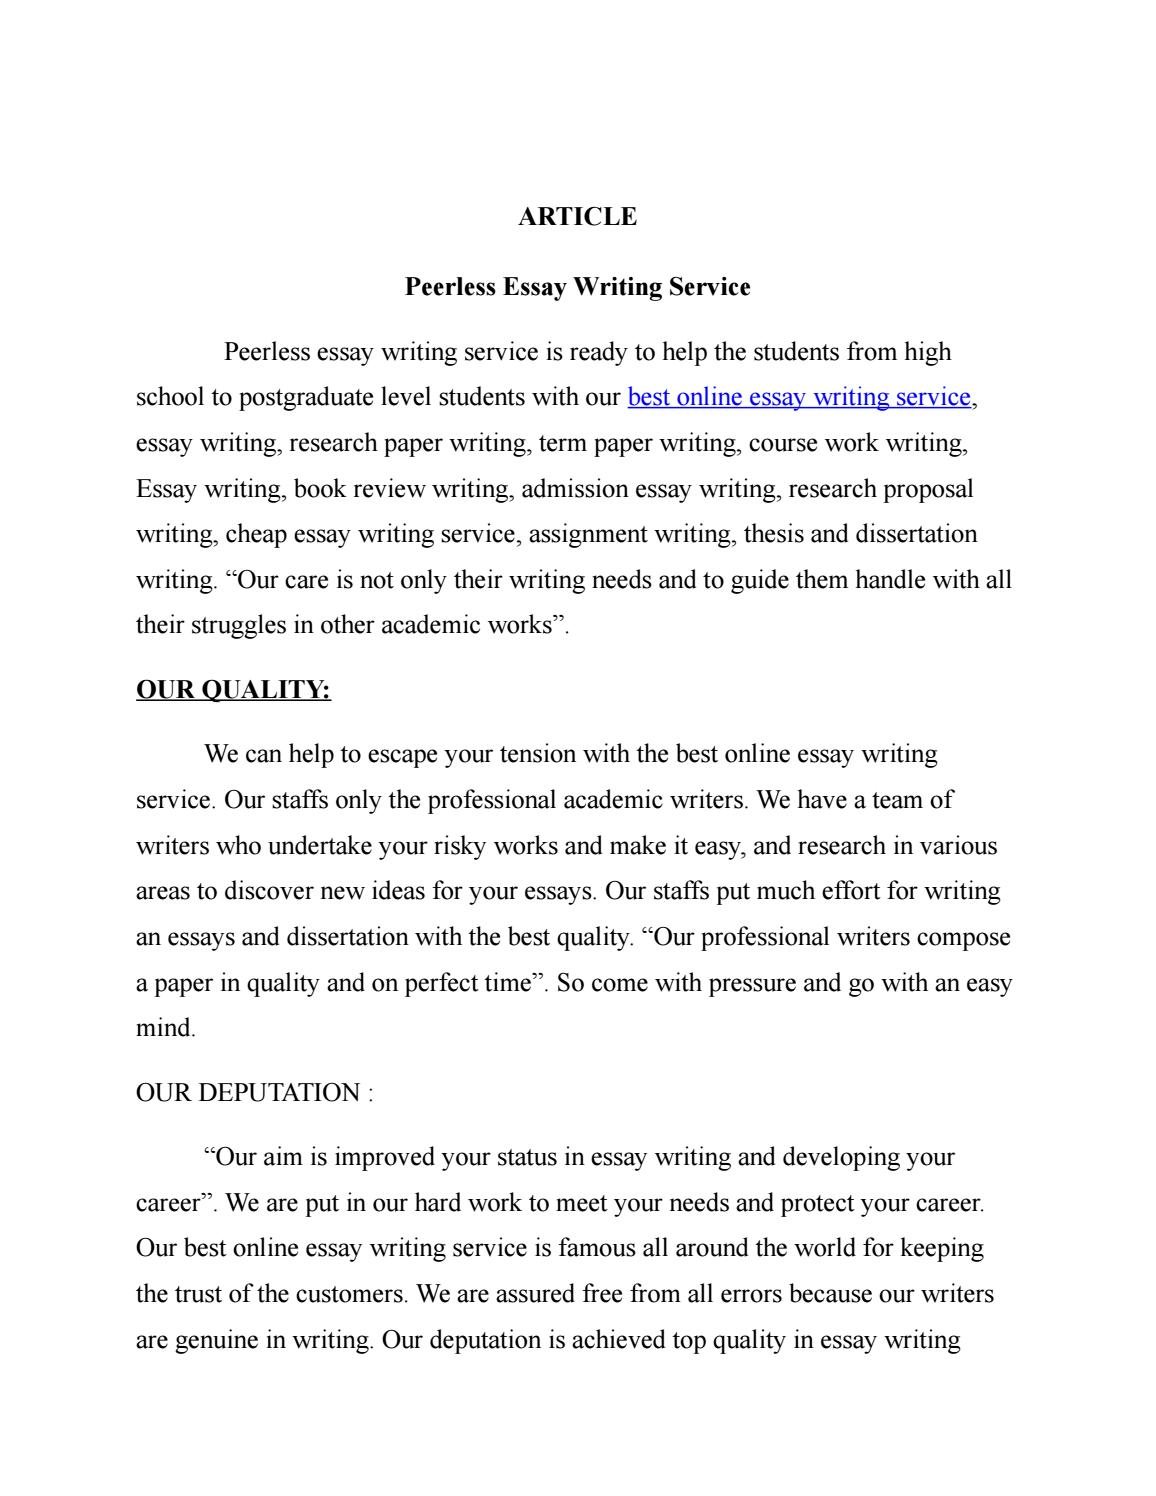 My Worldview Essay The Importance Of Voting Essays How To Write An Argumentative Essay Sample also Introduction Of Expository Essay Speech Teachers Day Essays Online Essay Writing Service